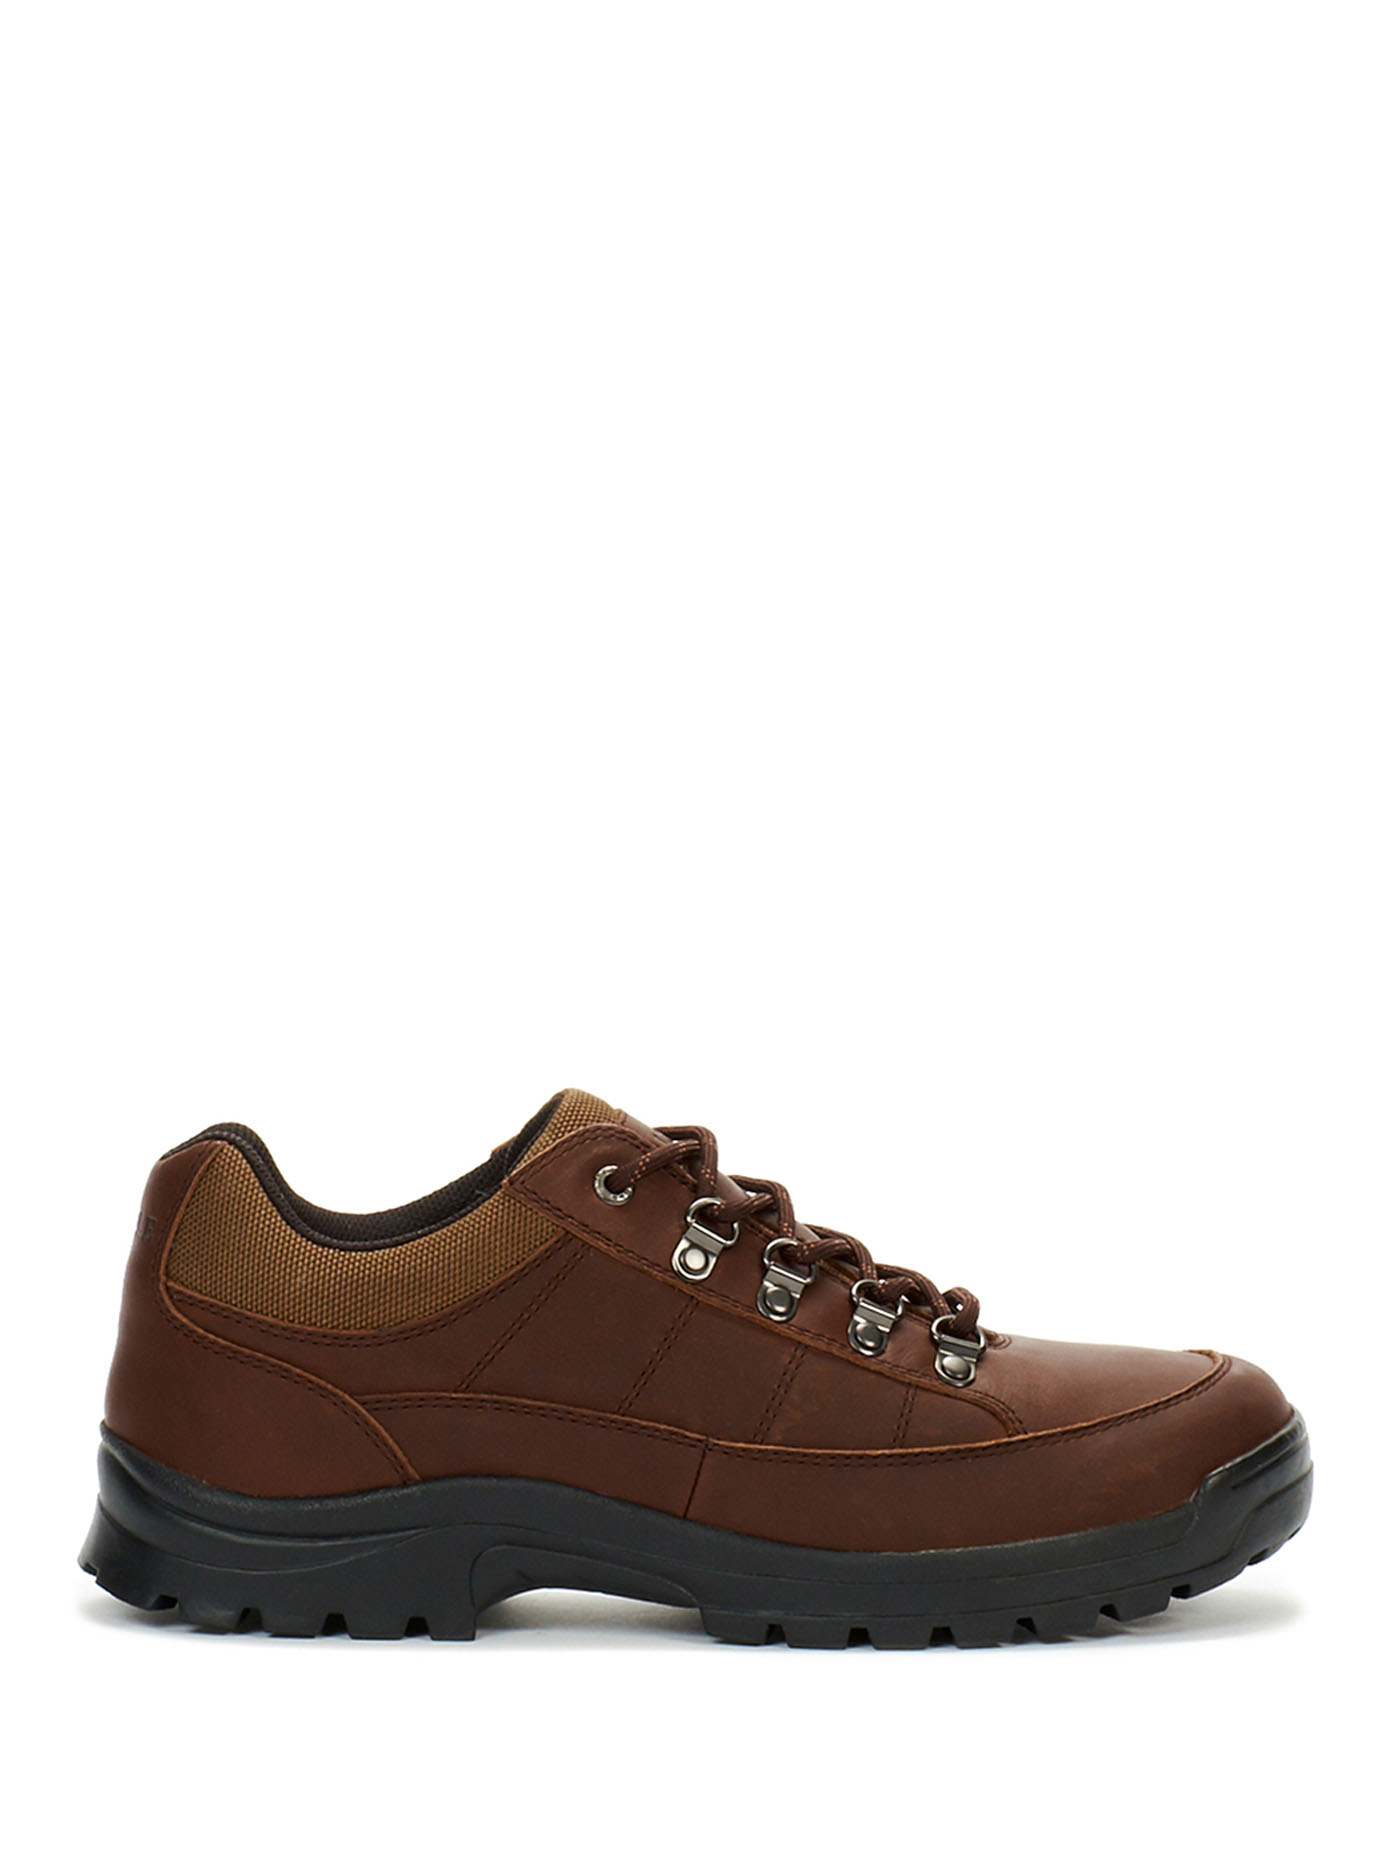 Chaussures cuir homme Alten leatherhomme | AIGLE